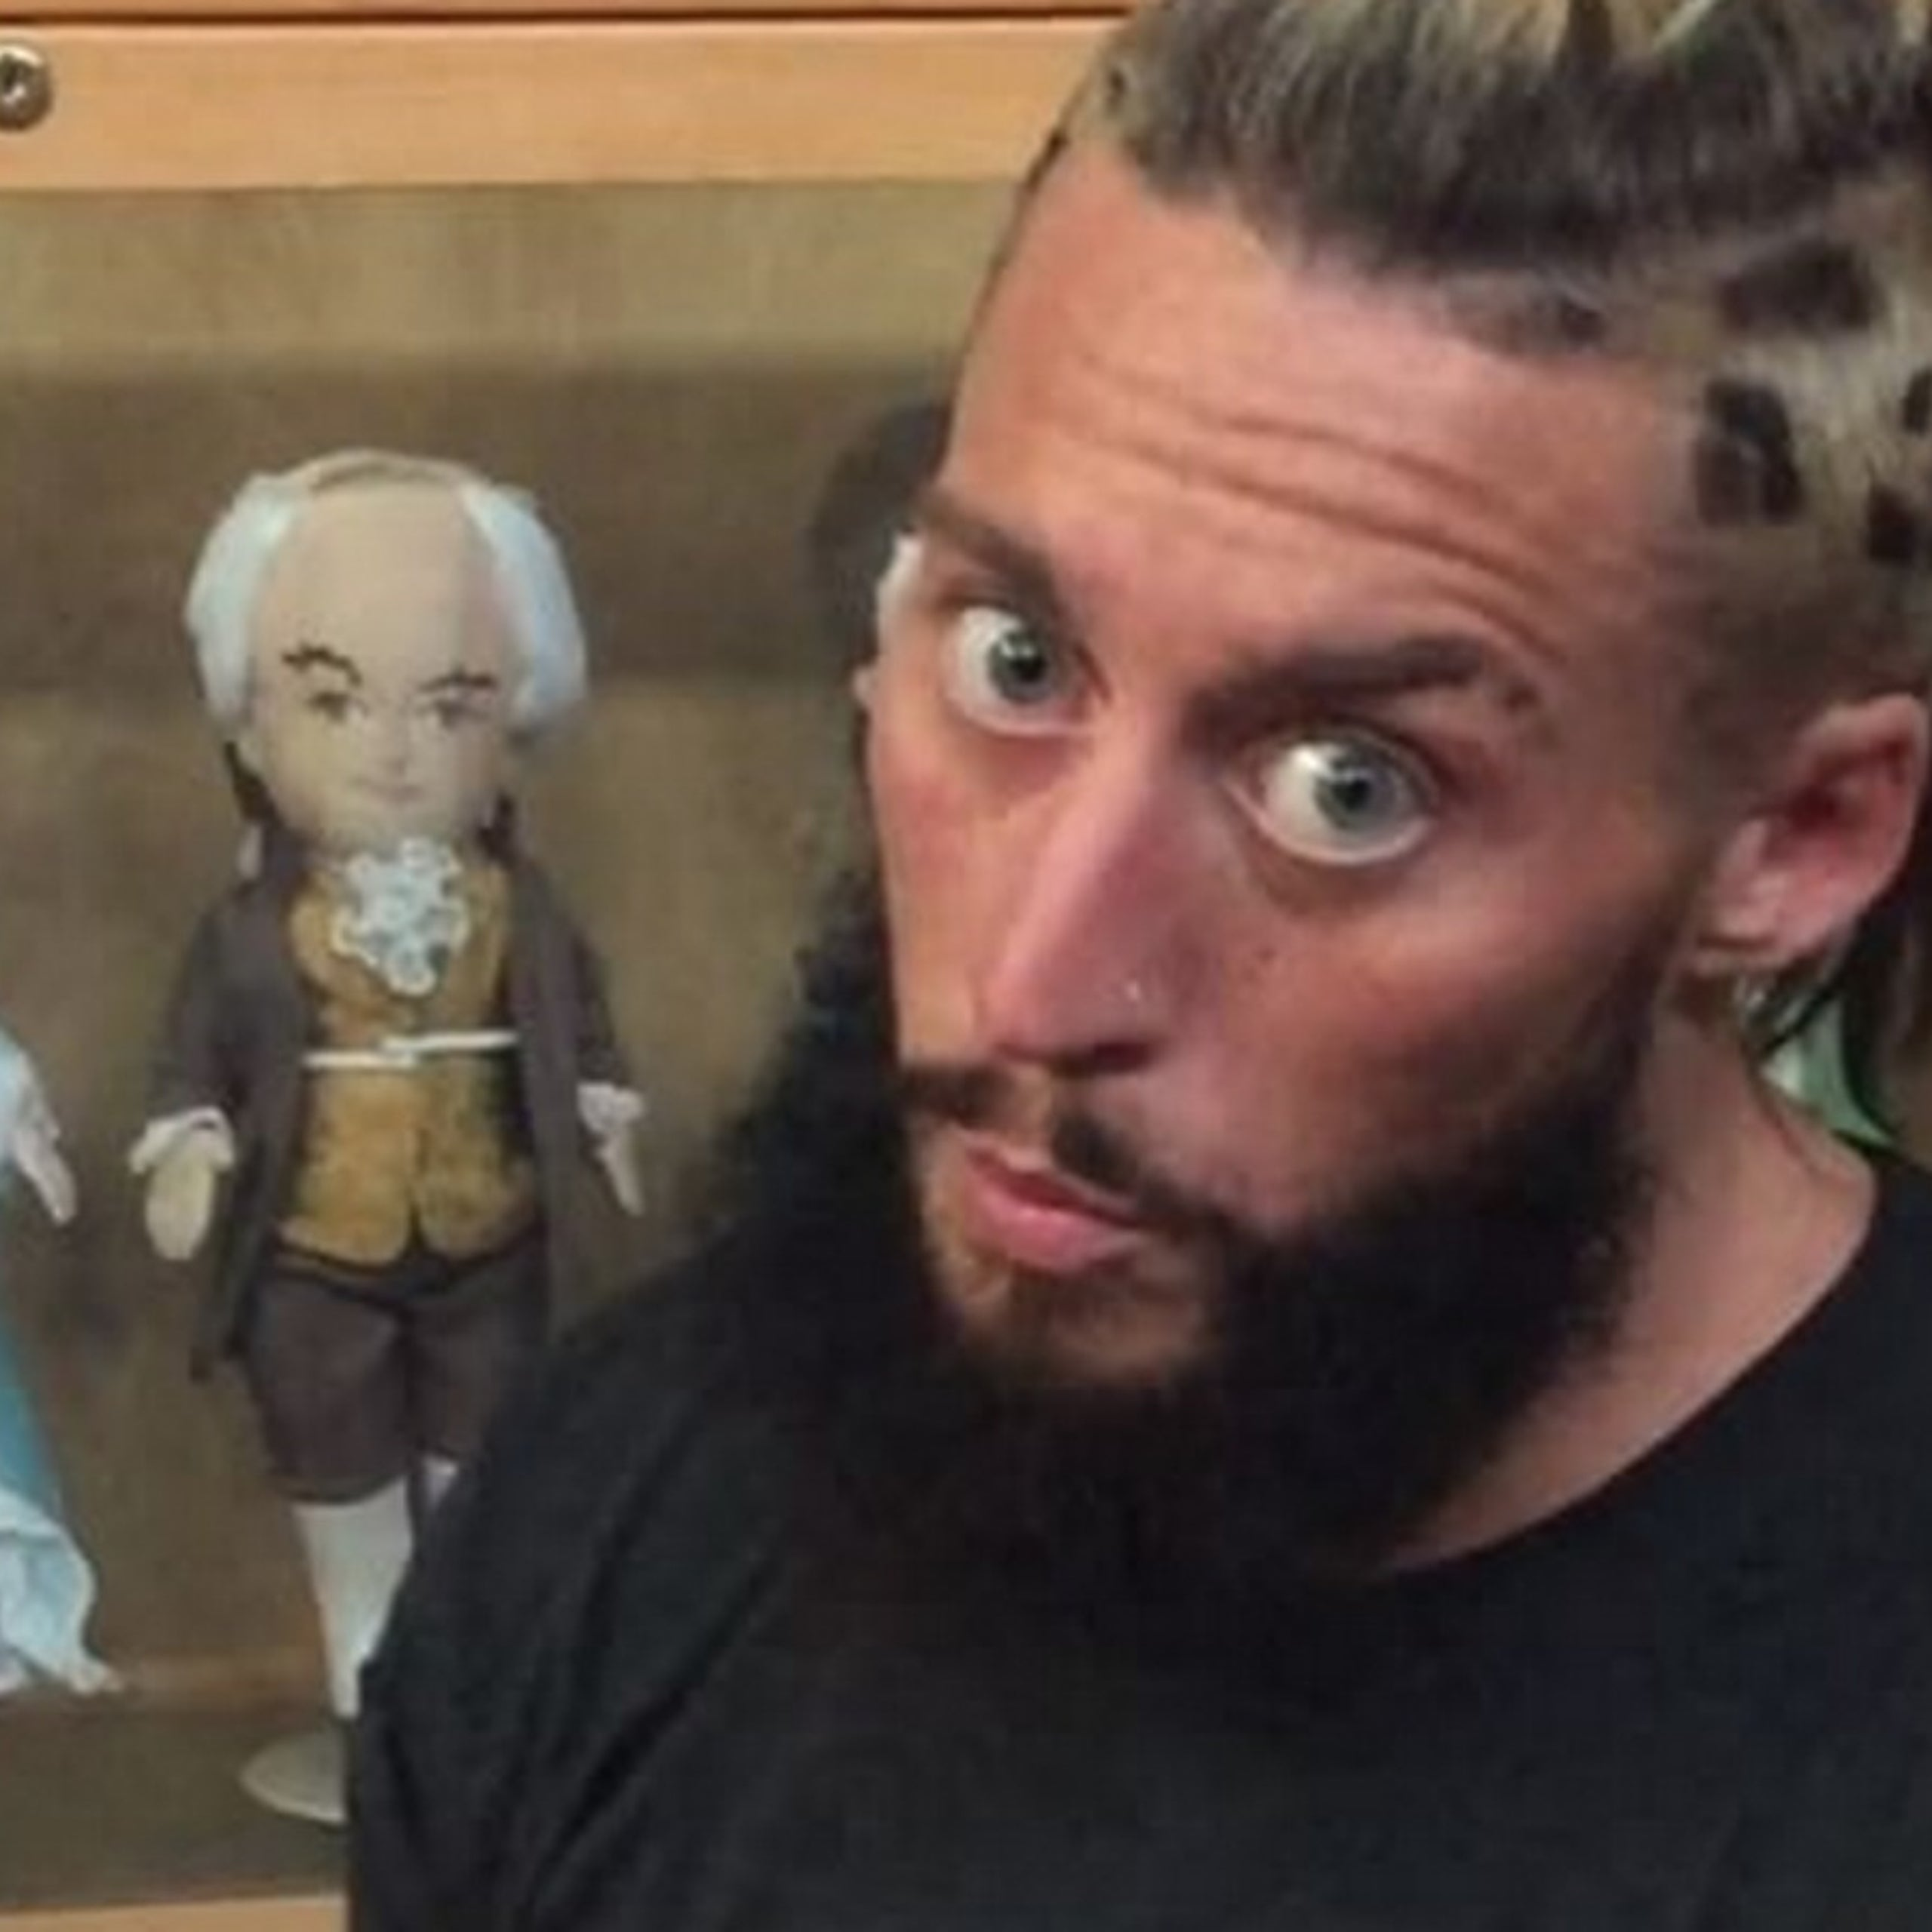 Wwe S Enzo Amore Enjoys Christmas In August At Bruce Springsteen Concert Fox Sports